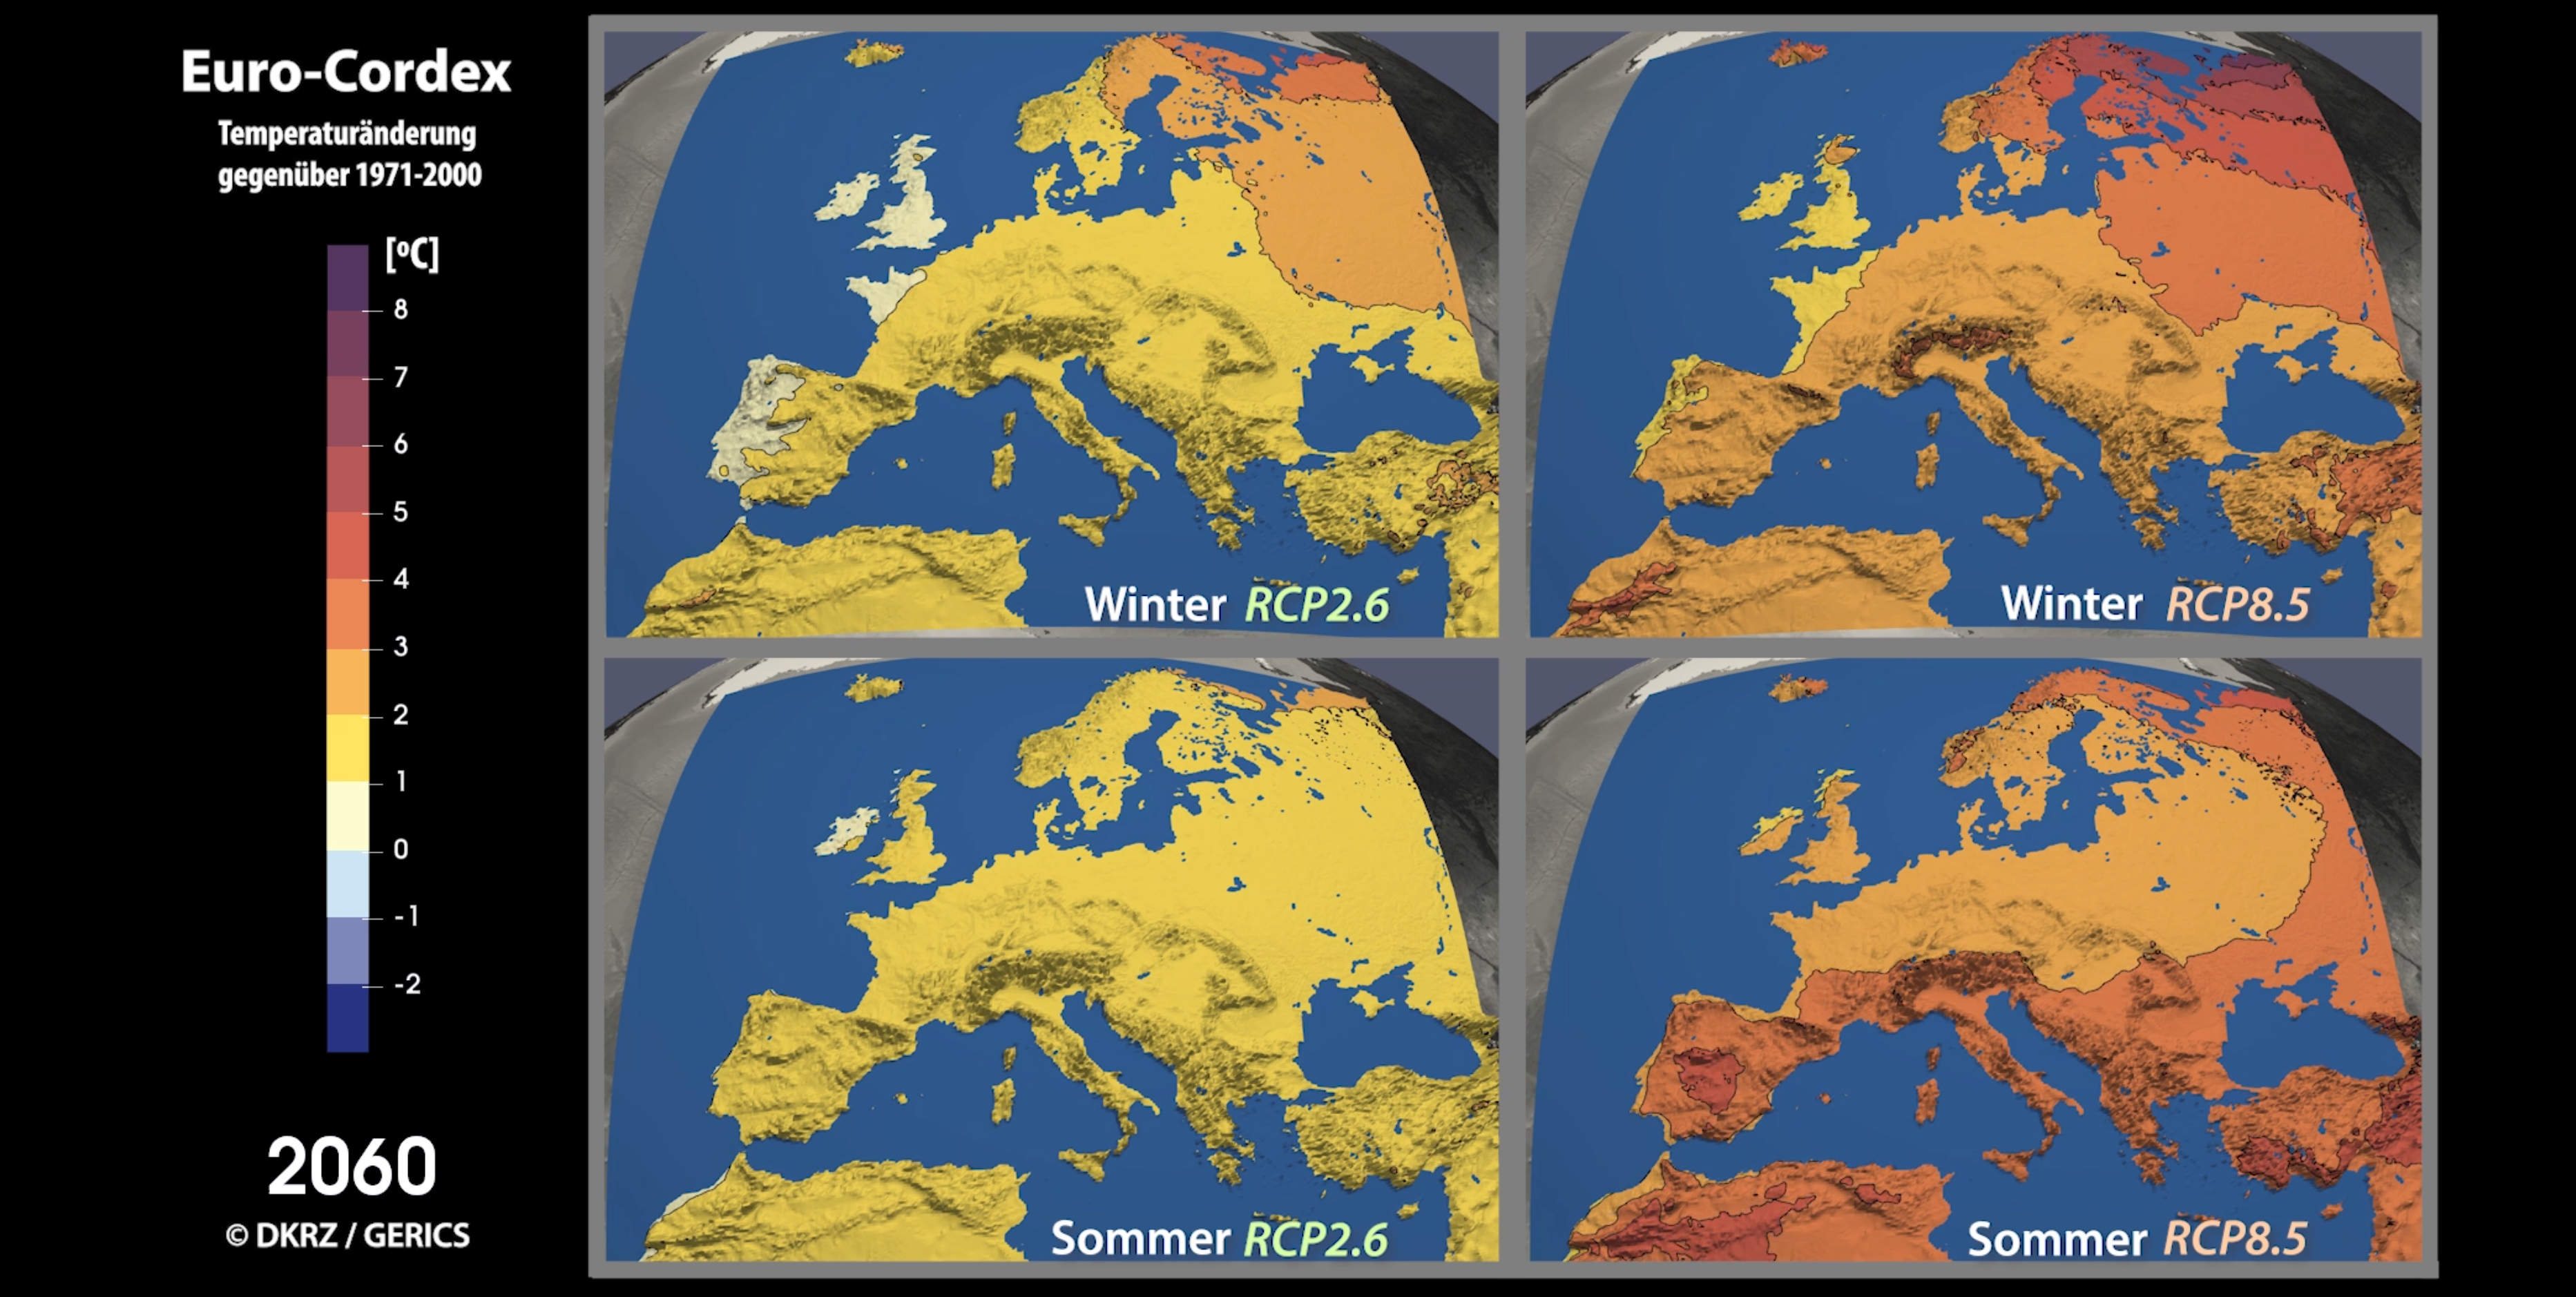 Climate projection year 2060 of RCP2.6 and RCP8.5 in Europe